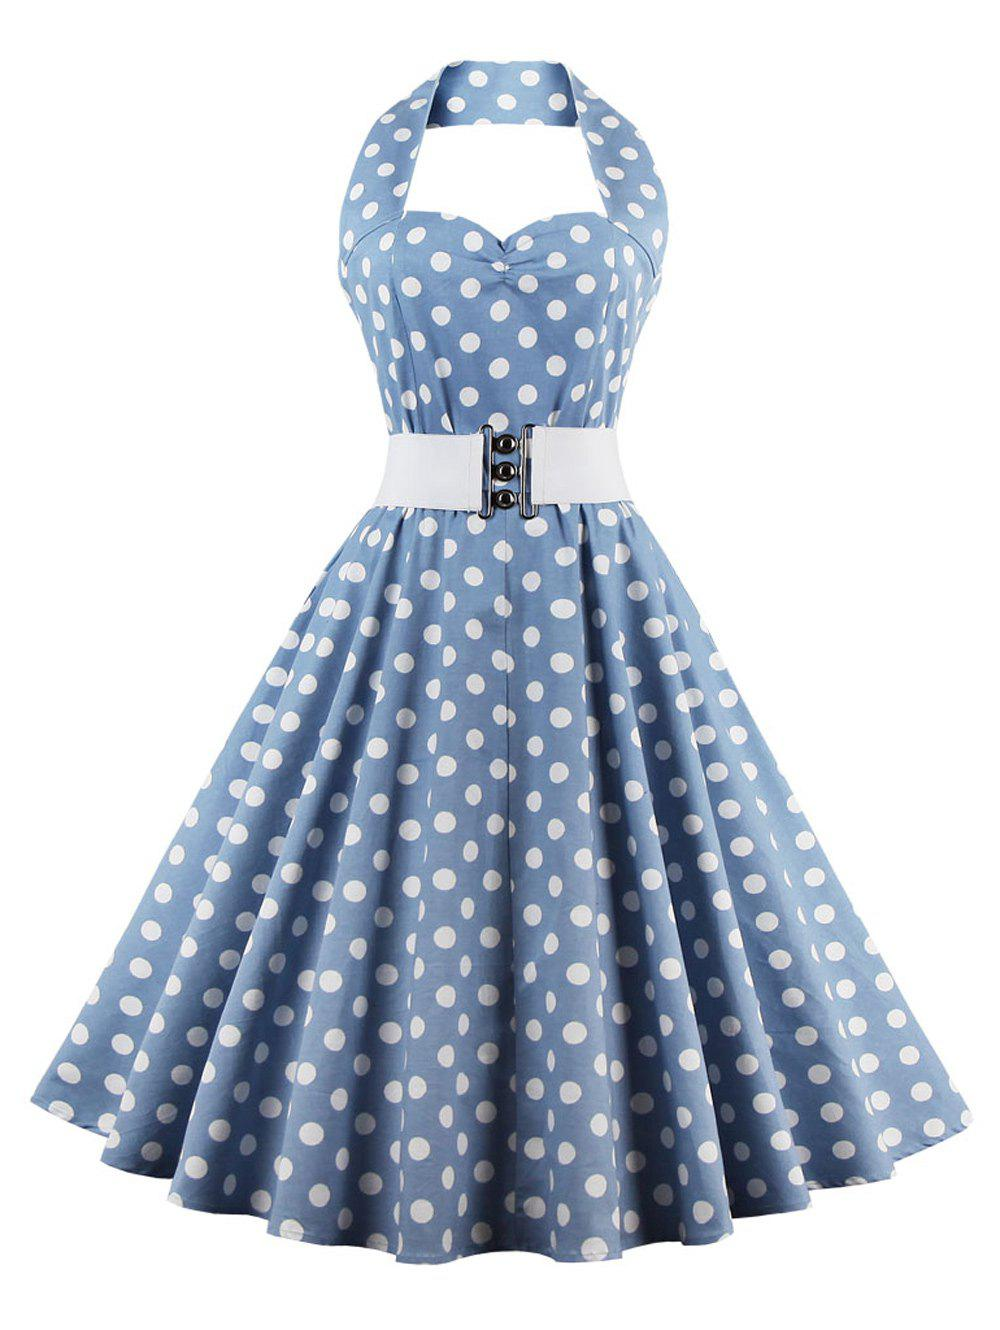 Retro Halter Sweetheart Neck Polka Dot Flare Dress retro polka dot halter sweetheart neck flare dress